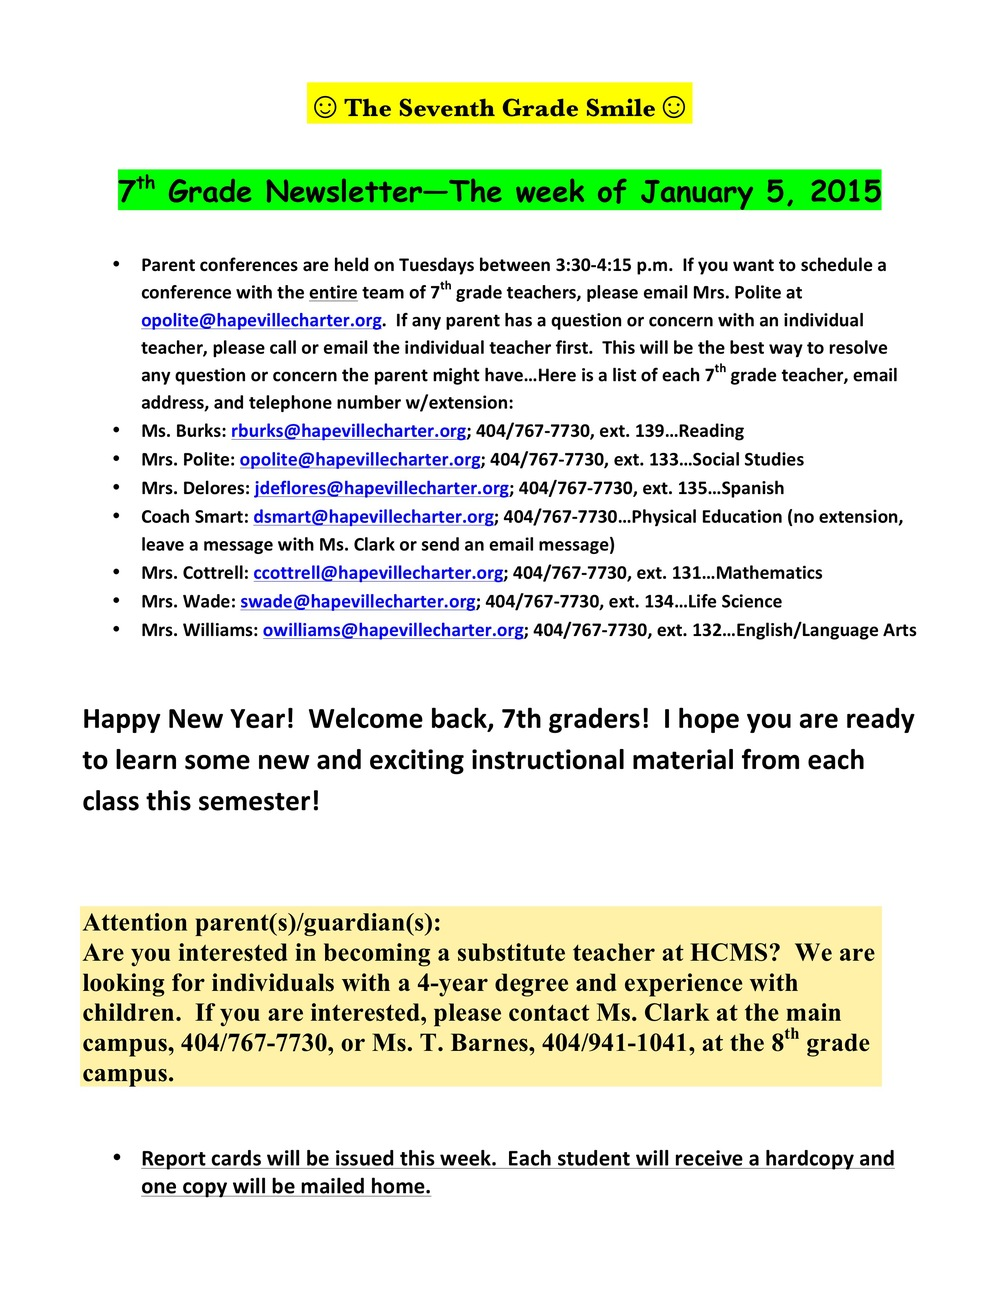 Newsletter Image7th grade January 6 2015.jpeg